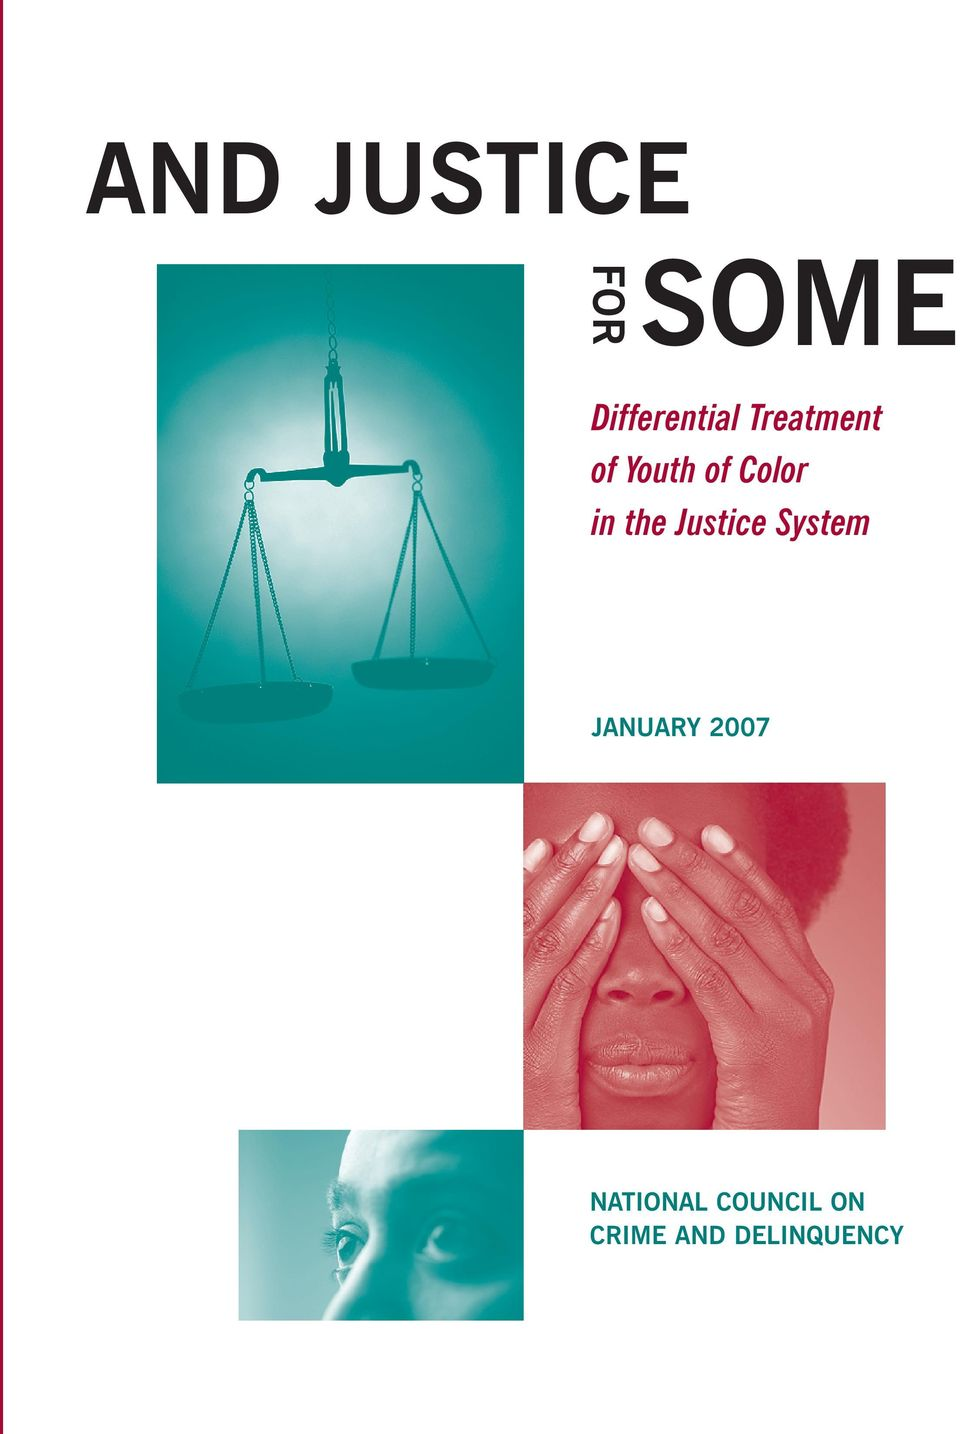 Justice System JANUARY 2007